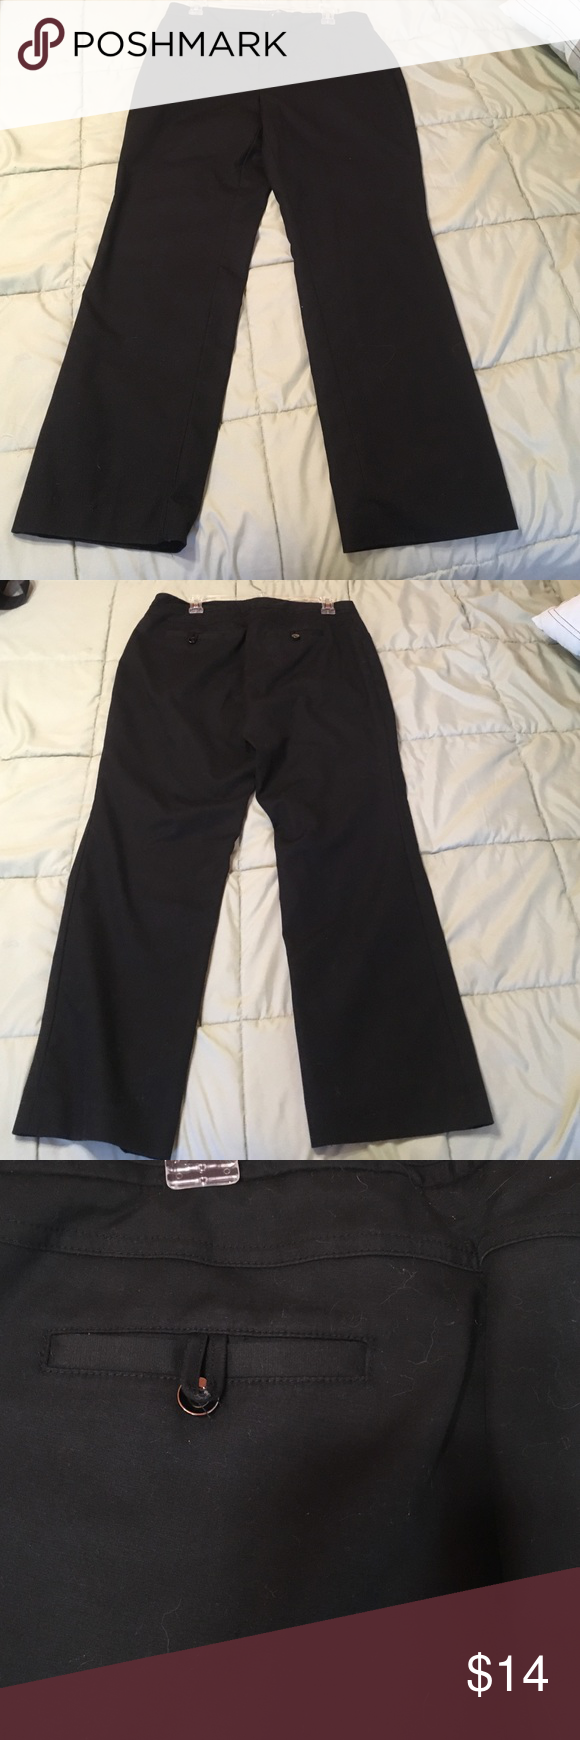 "Rafaella curvy black pants The Smith yellow black pants are in great shape they have two pockets in the back with buttons. The front has two slant pockets and a zipper. The inseam is 28"".waist is 33"". They are made  of cotton,polyester, and spandex . Rafaella Pants"